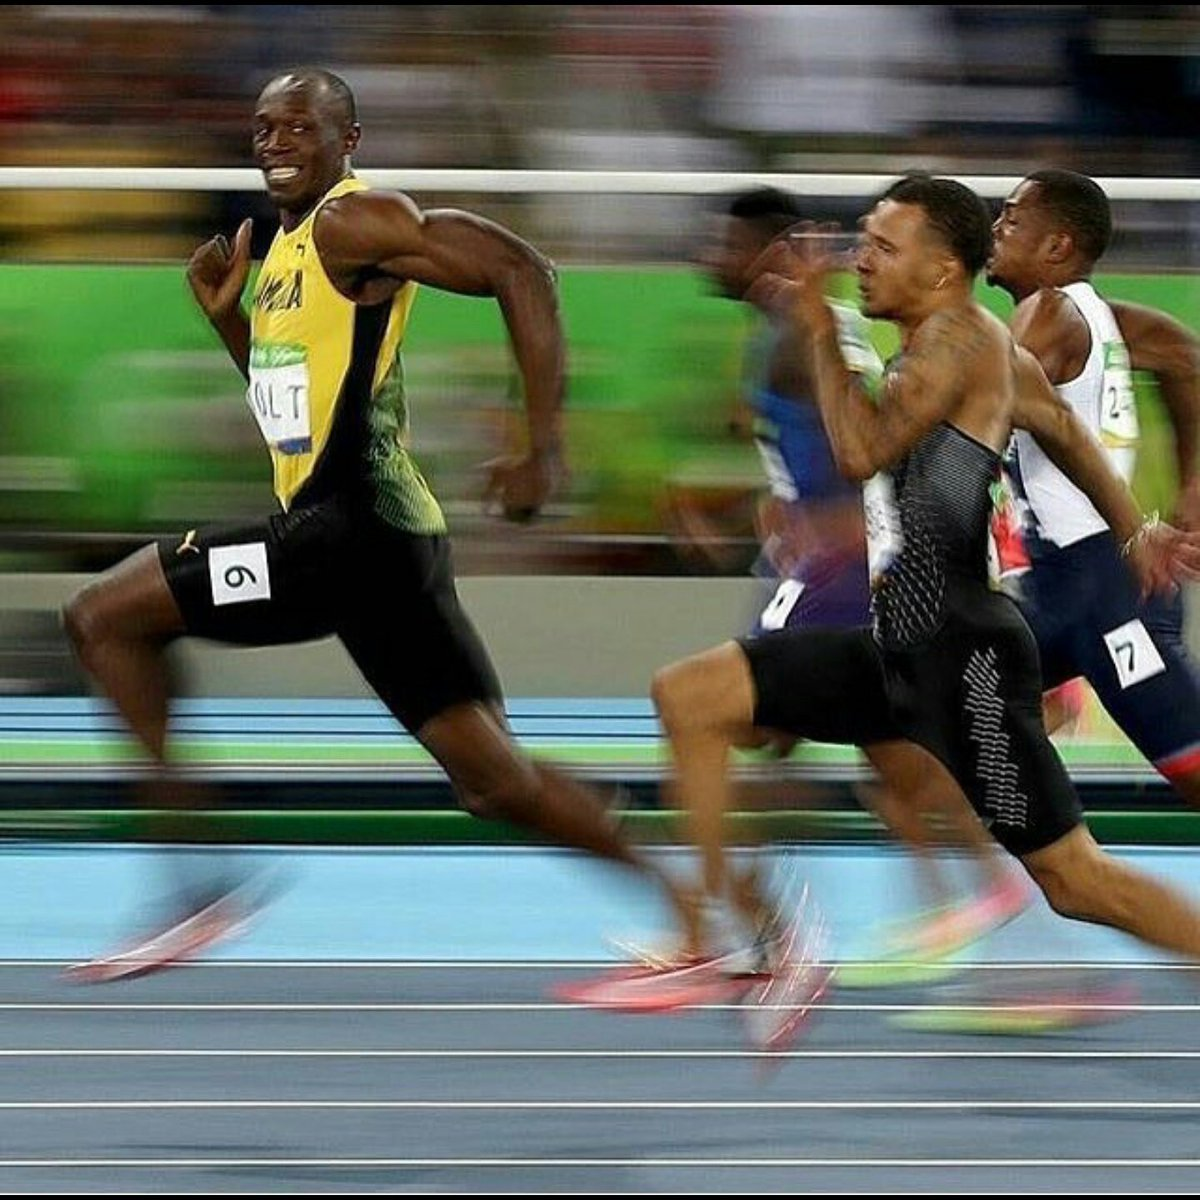 Usain Bolt takes second to pose. Then asks cameraman 2 send a copy. Then gives out email addr. Then wins race. #Bolt https://t.co/Hj6irh3GaQ